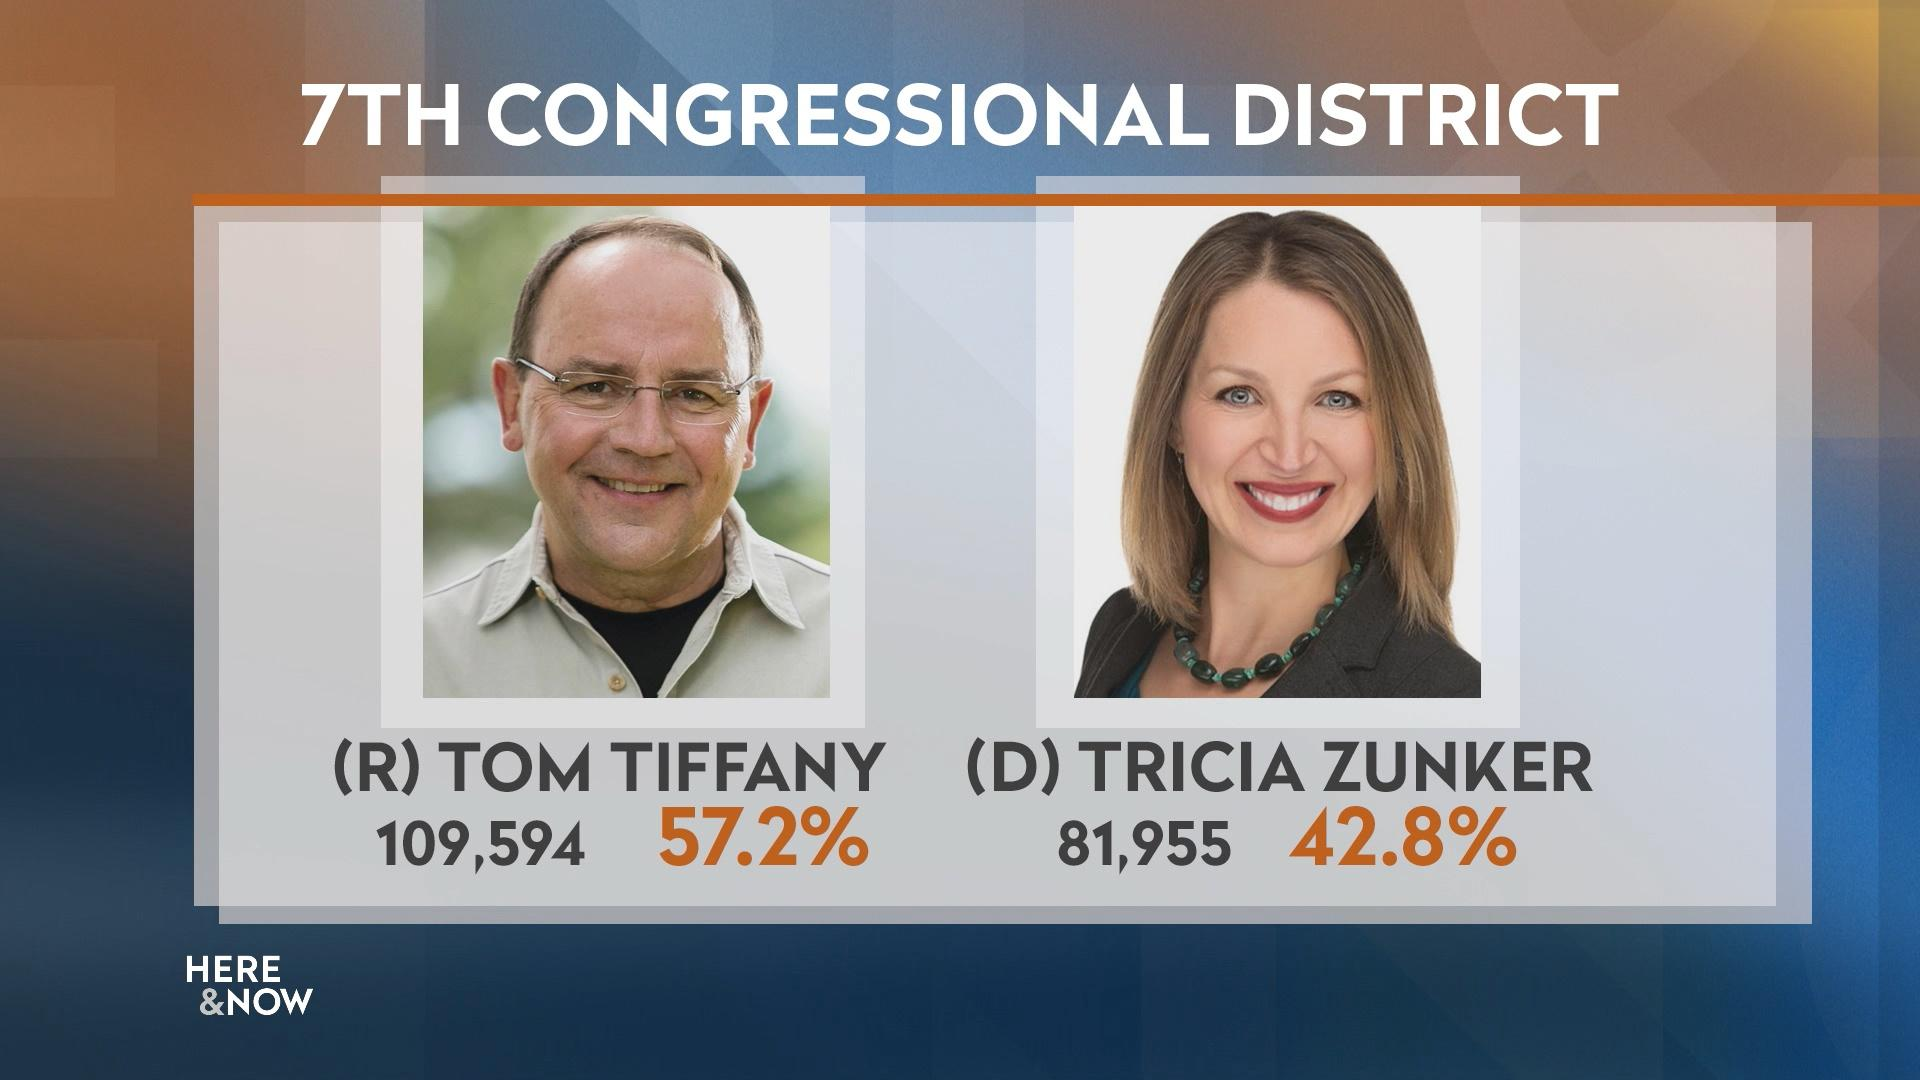 National Guard Assists at Polls/Tiffany Wins 7th Cong. Seat